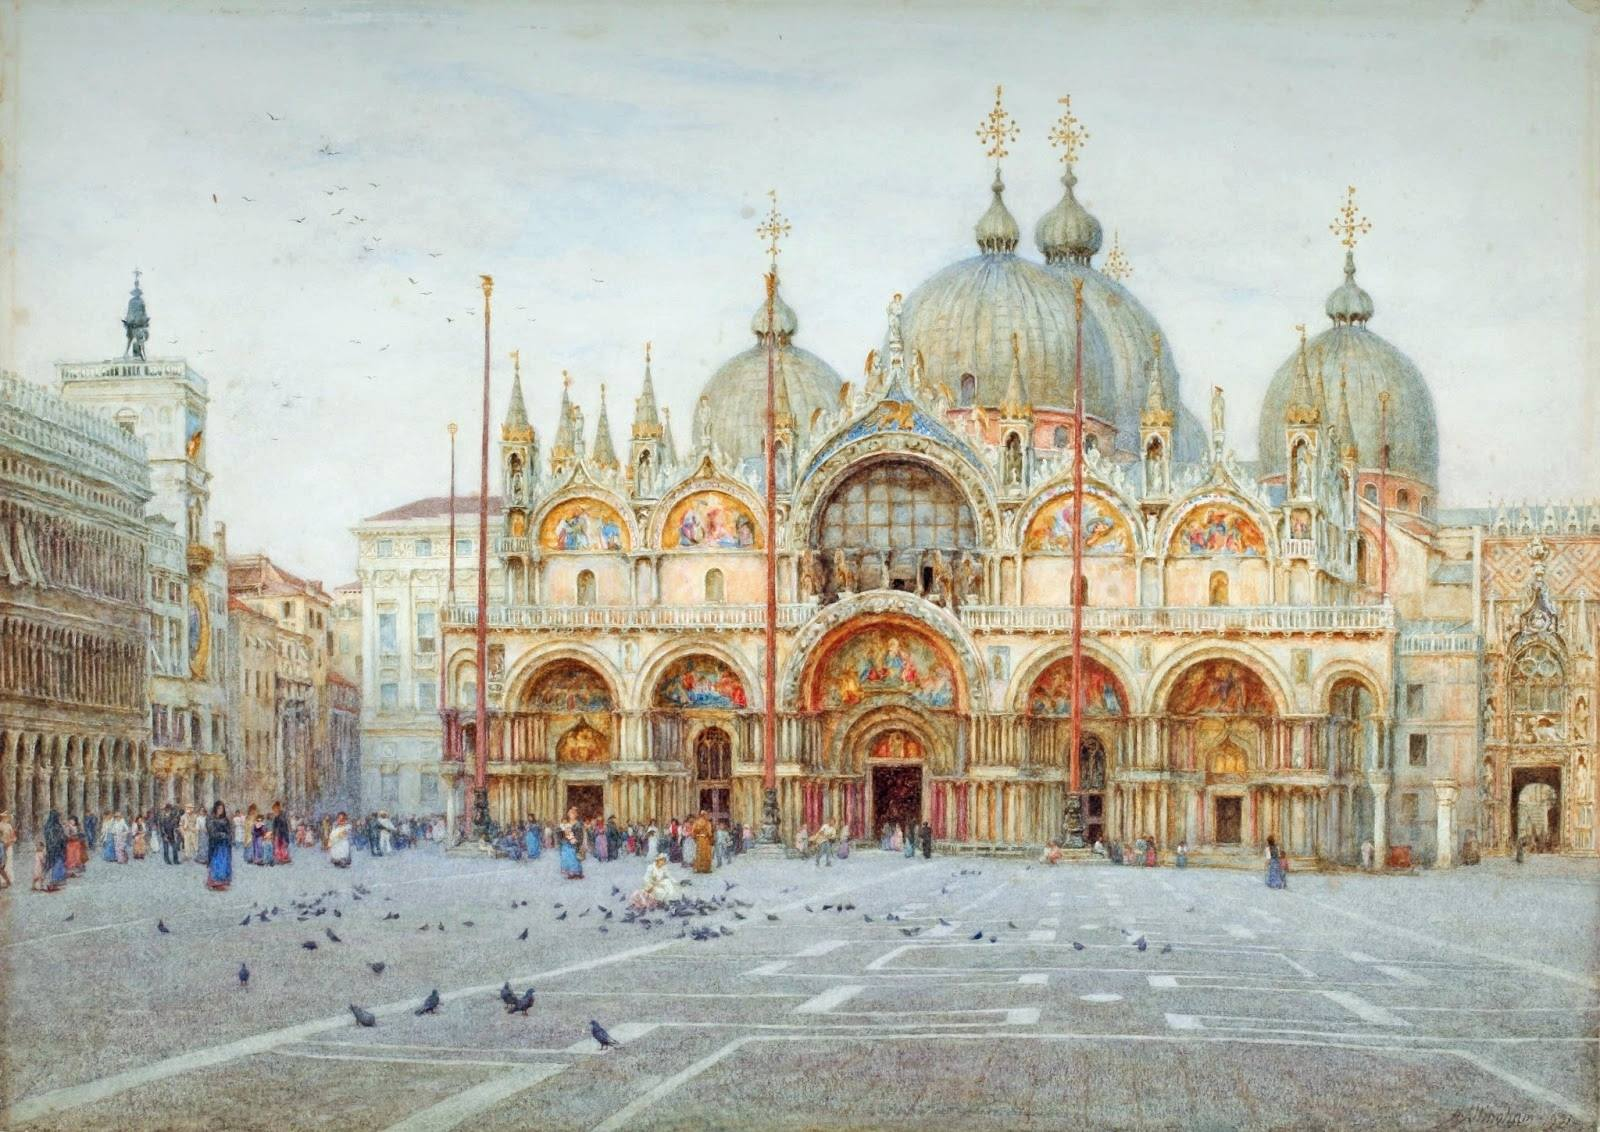 The Basilica San Marco, Venice, by Helen Allingham, Early 20th Century